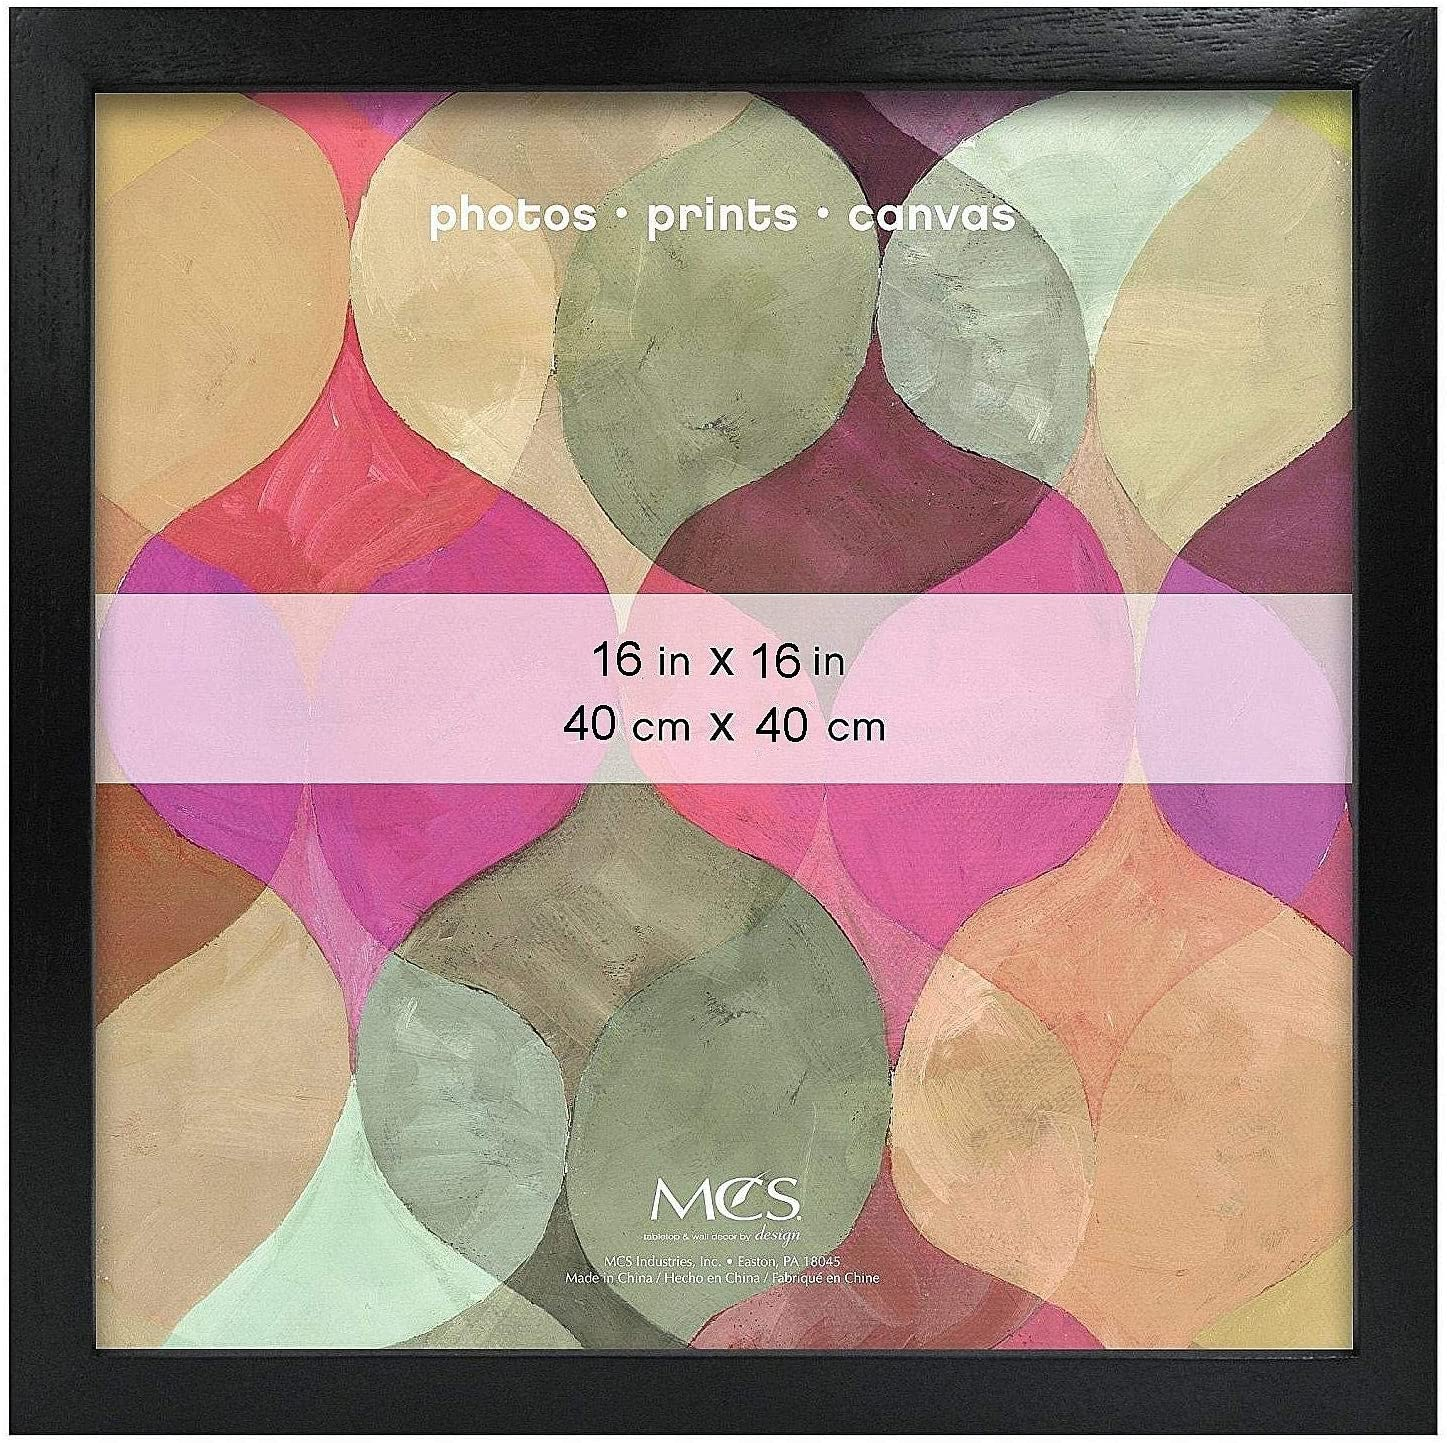 Art Shadow-Box .75in Depth Black Wood Cheap super special price 16x16 r by MCS 16 - Frame Ranking TOP17